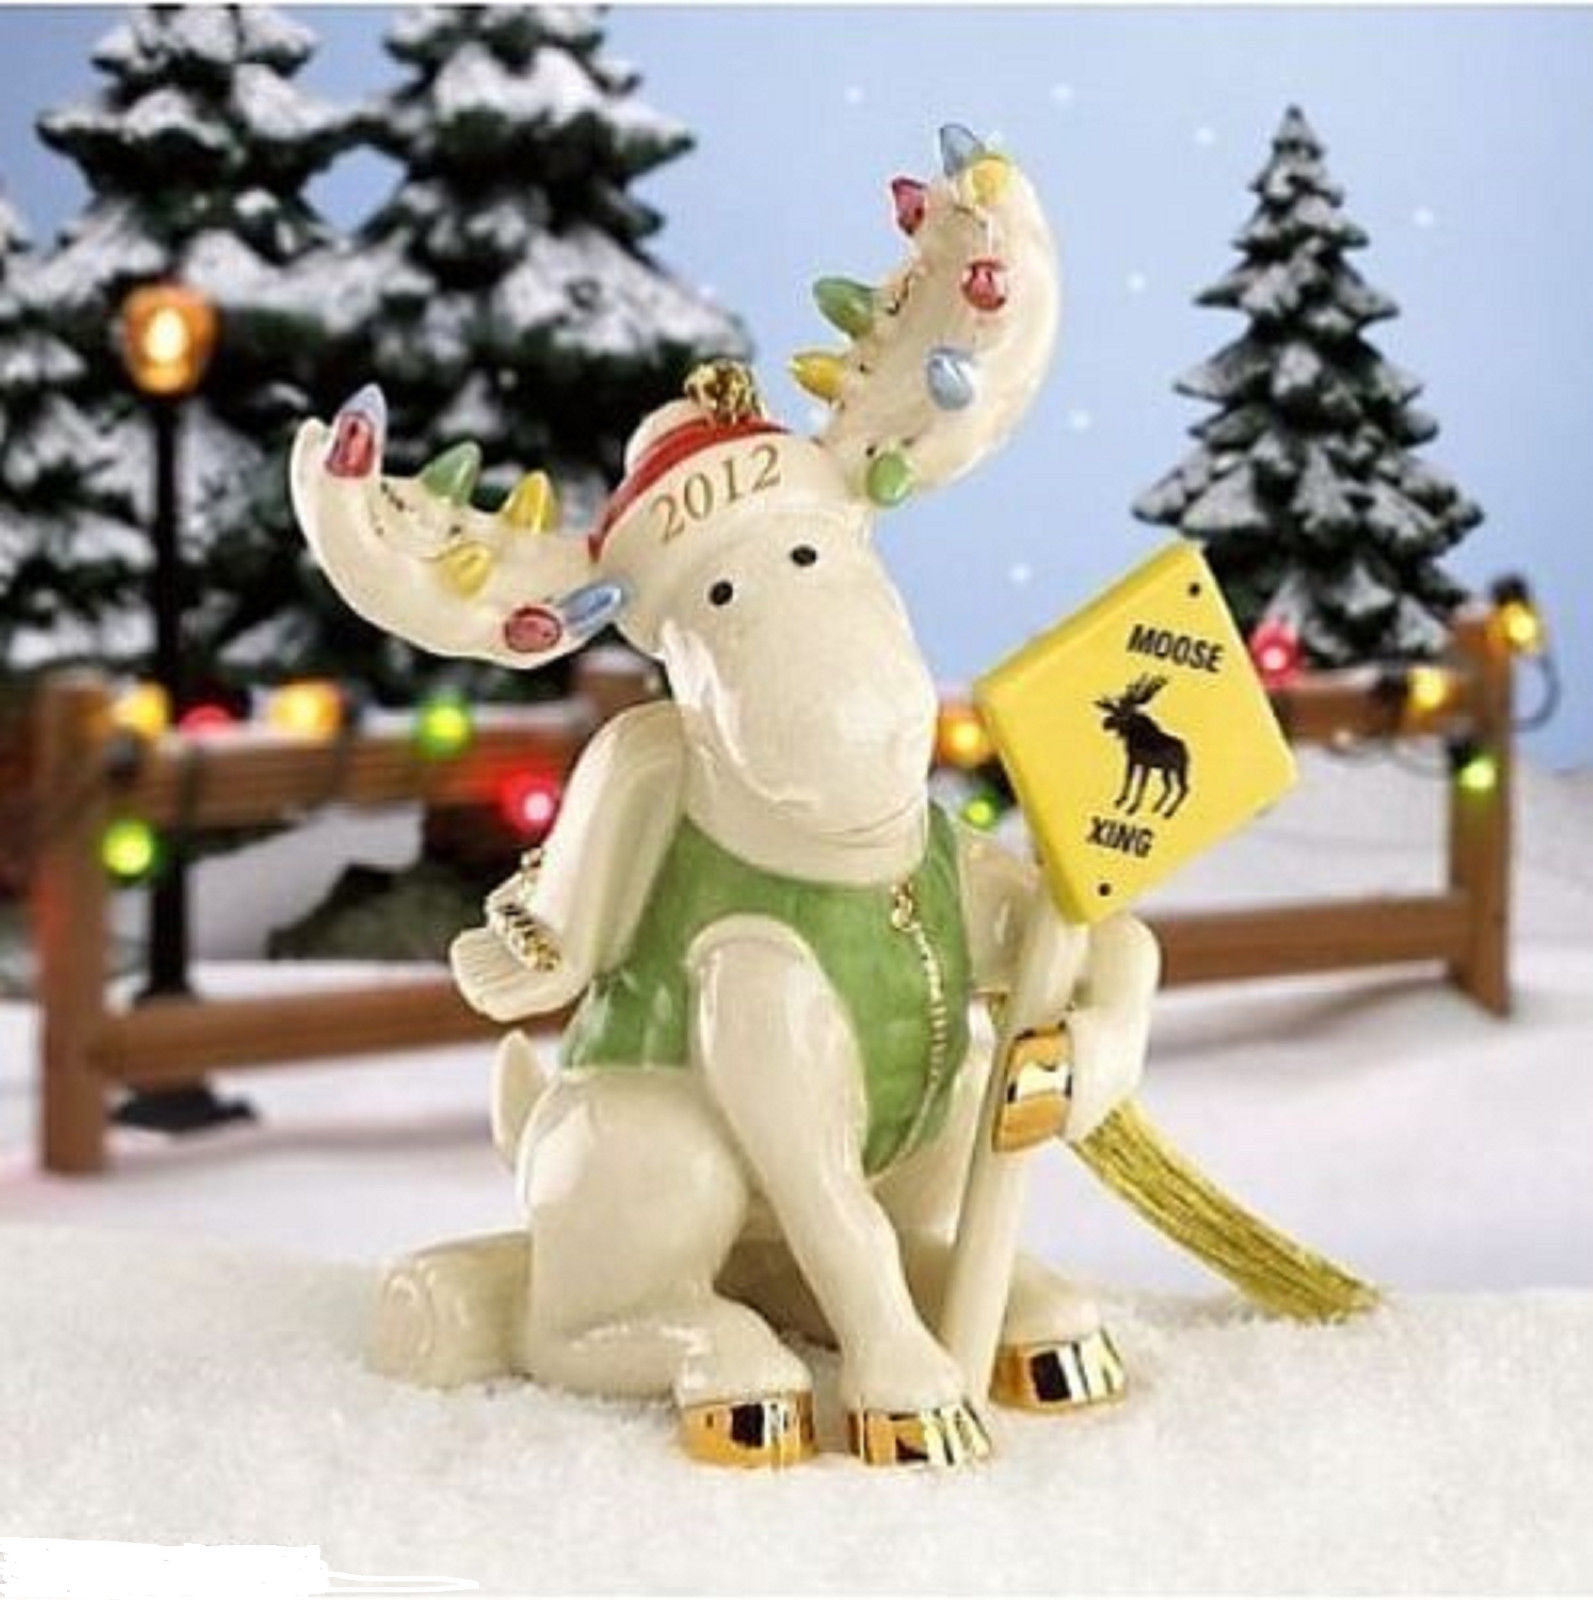 Lenox 2012 Moose Marcel Ornament Annual Merry Moose Crossing Caution Sign NEW